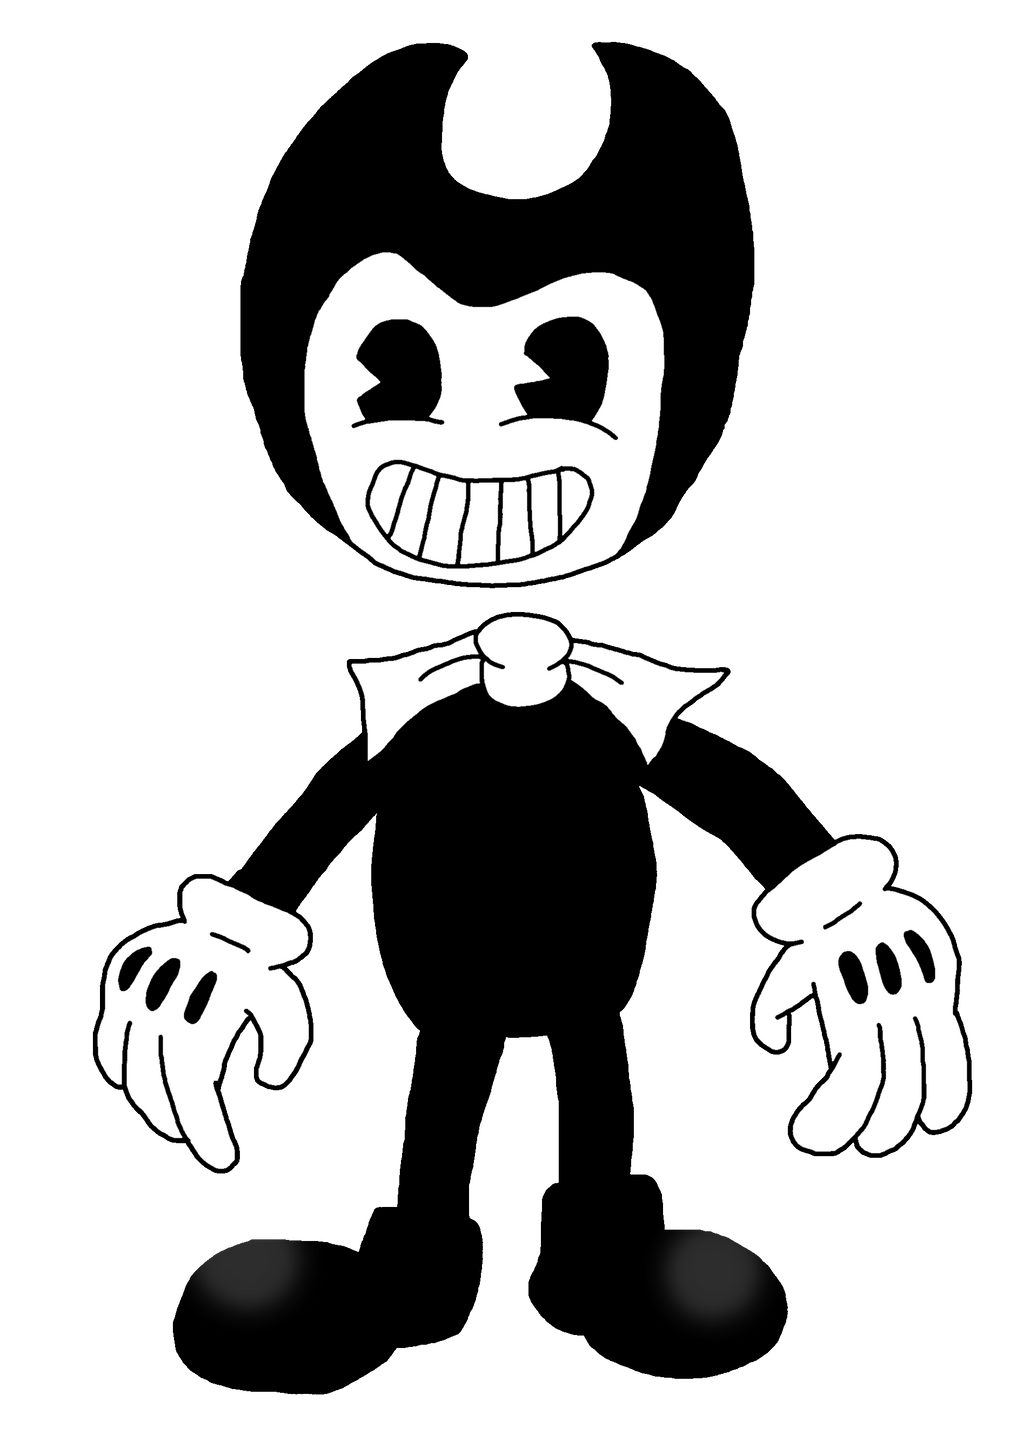 Bendy Images - Reverse Search